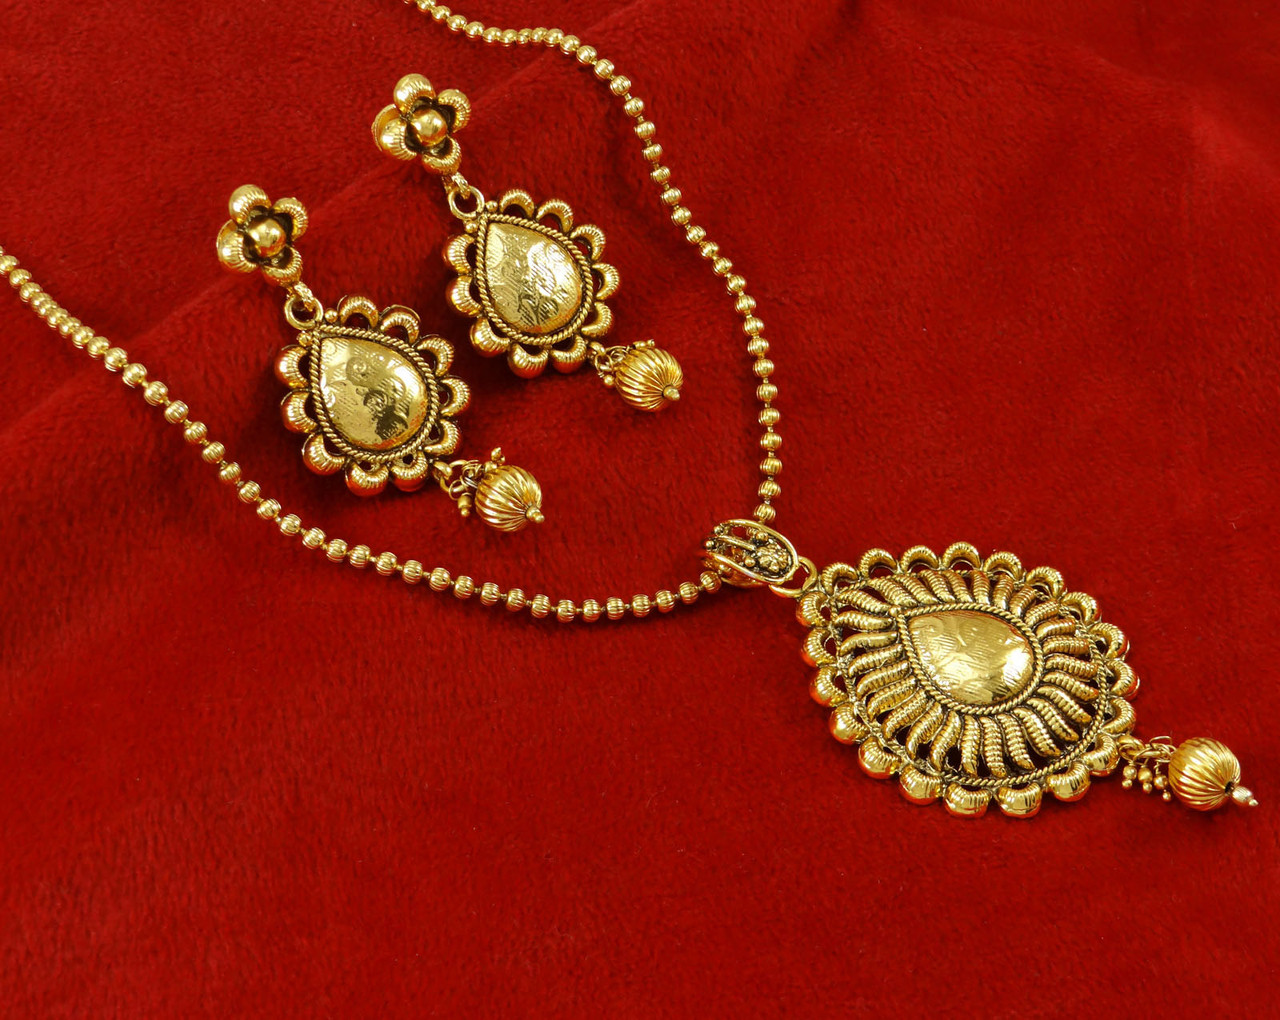 Ethnic Indian Jewelry Traditional Gold Plated Pendant Necklace